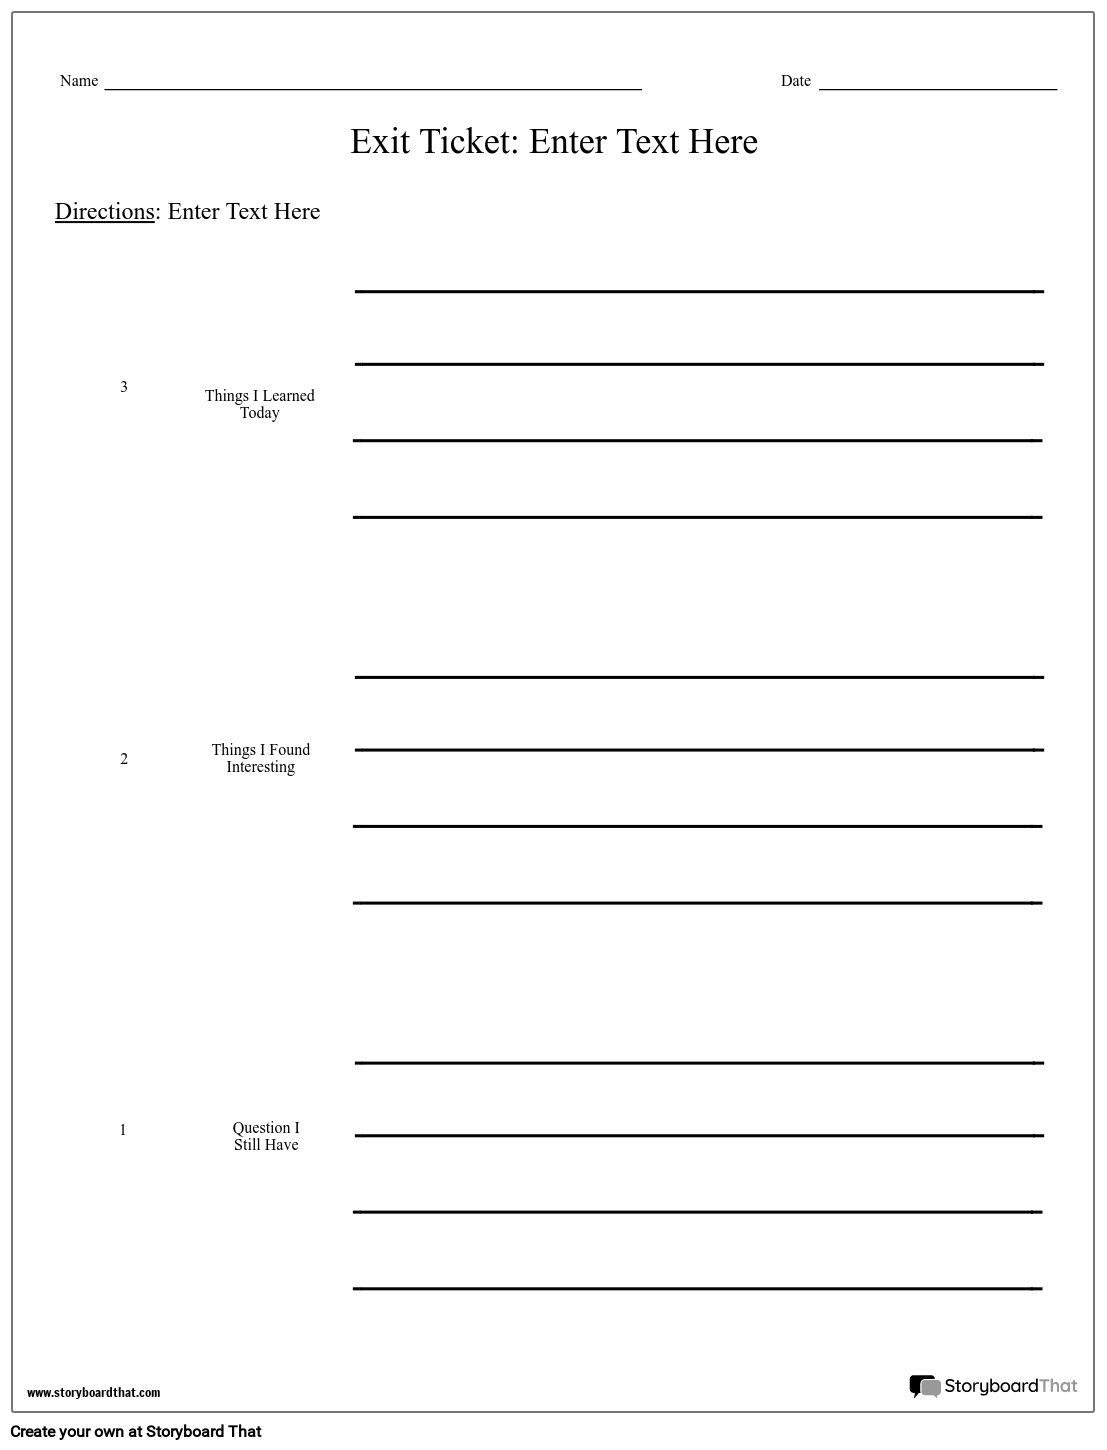 Exit Ticket - 3-2-1 Storyboard by worksheet-templates